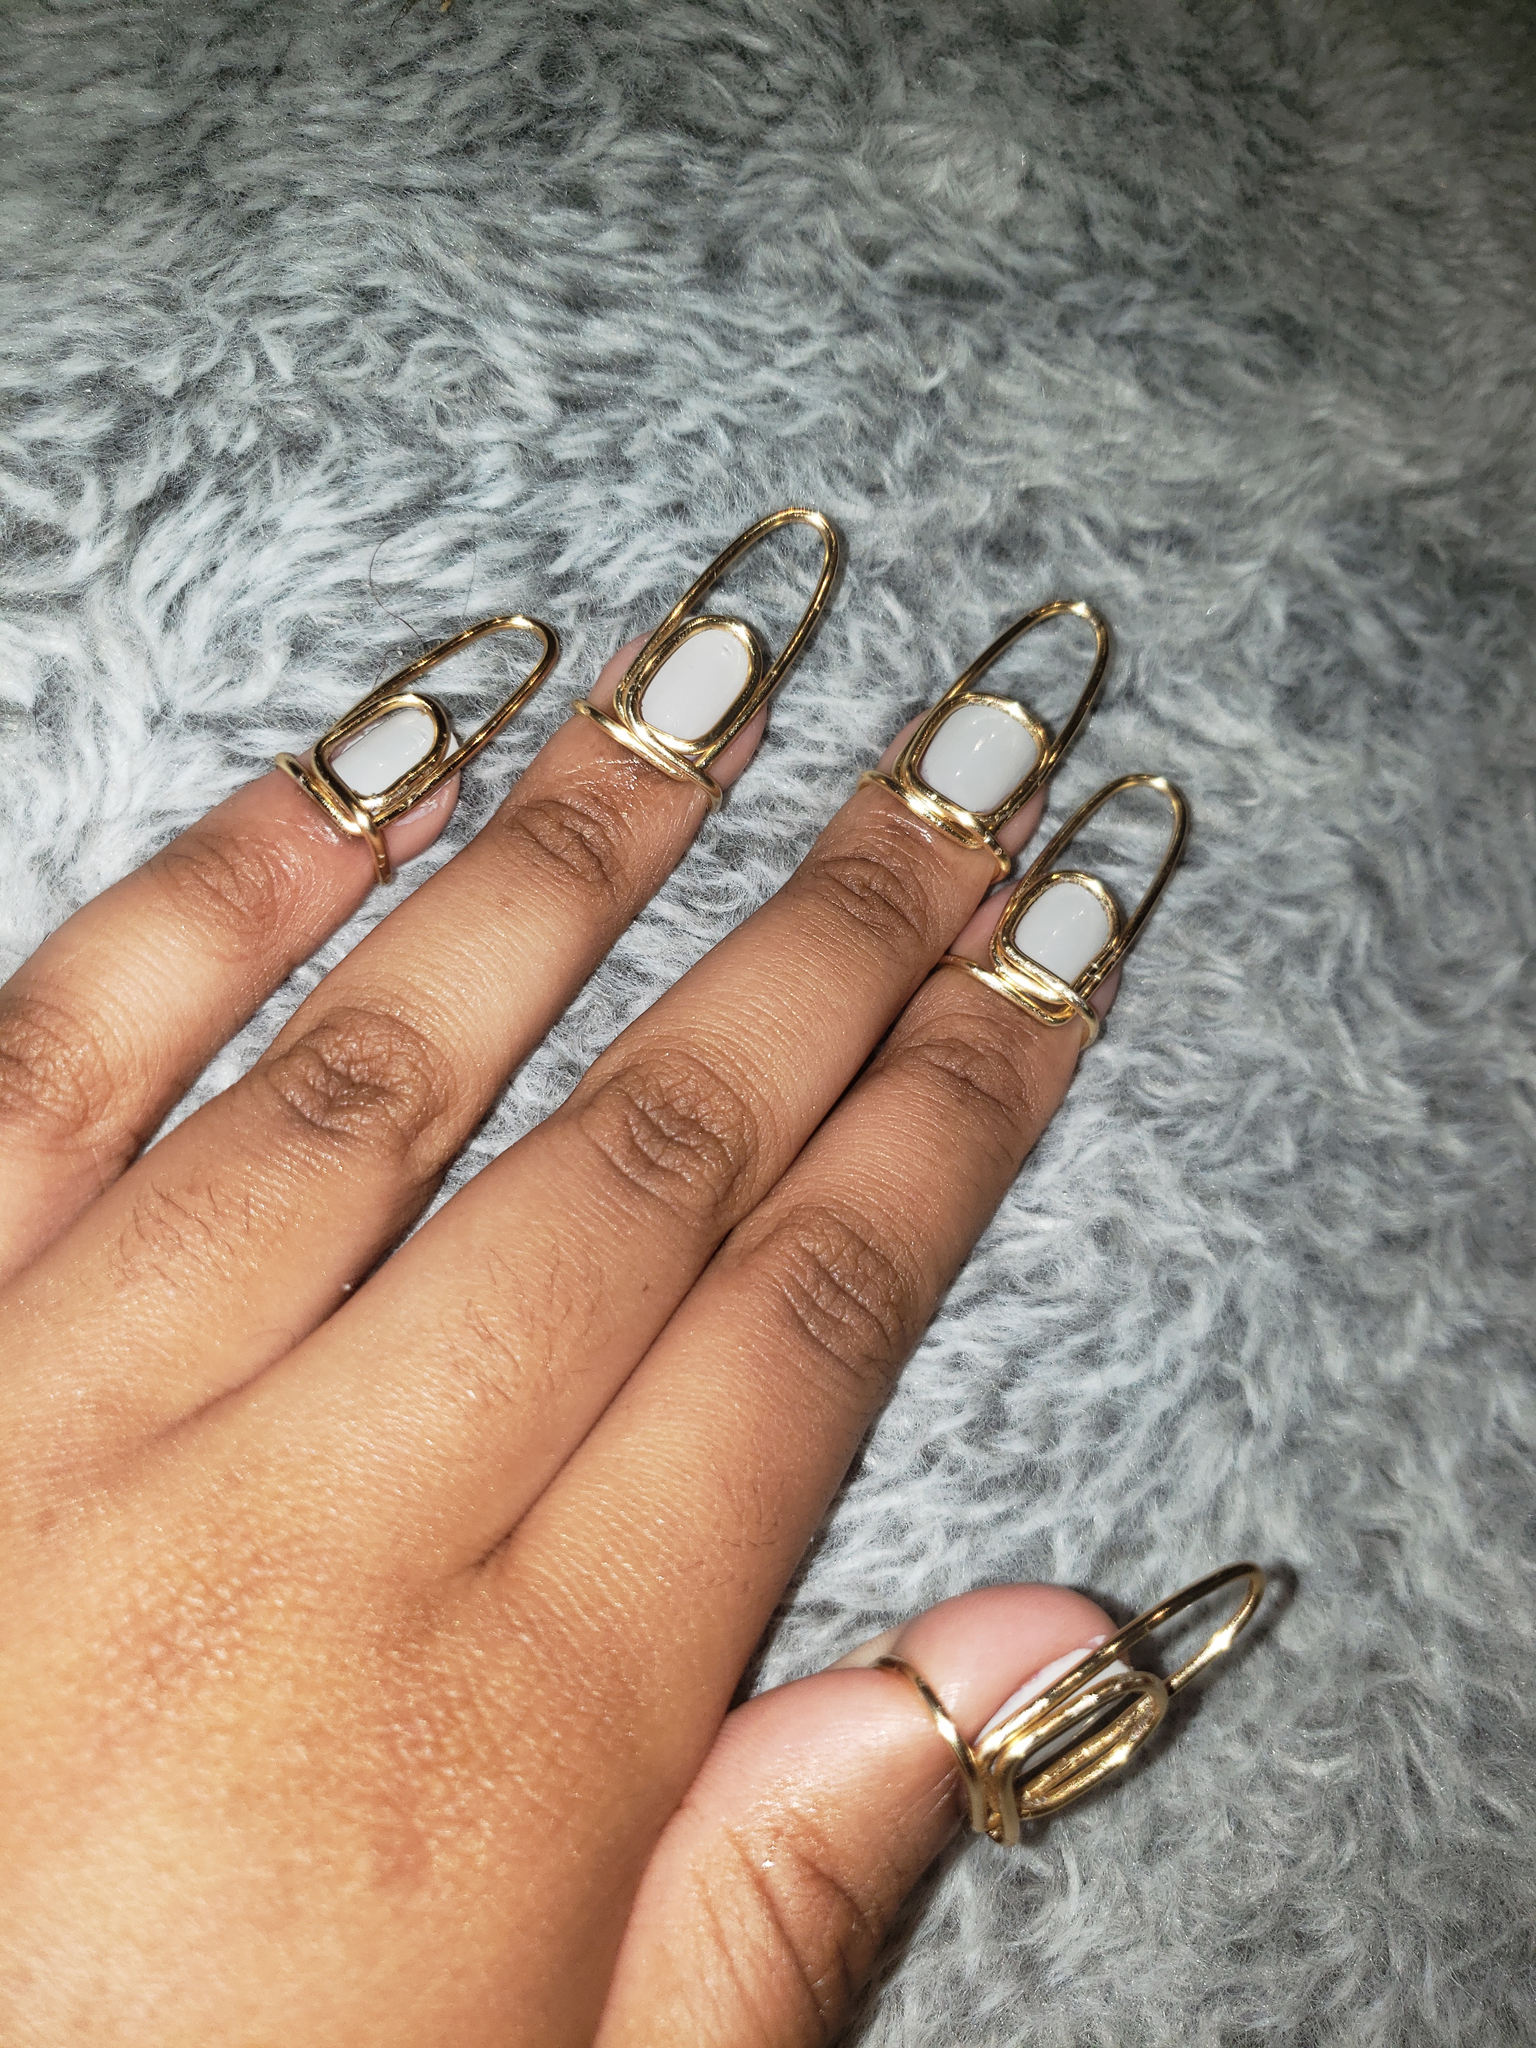 Nail ring set in Infinity Style, Gold, 16 Gauge , Long, Oval